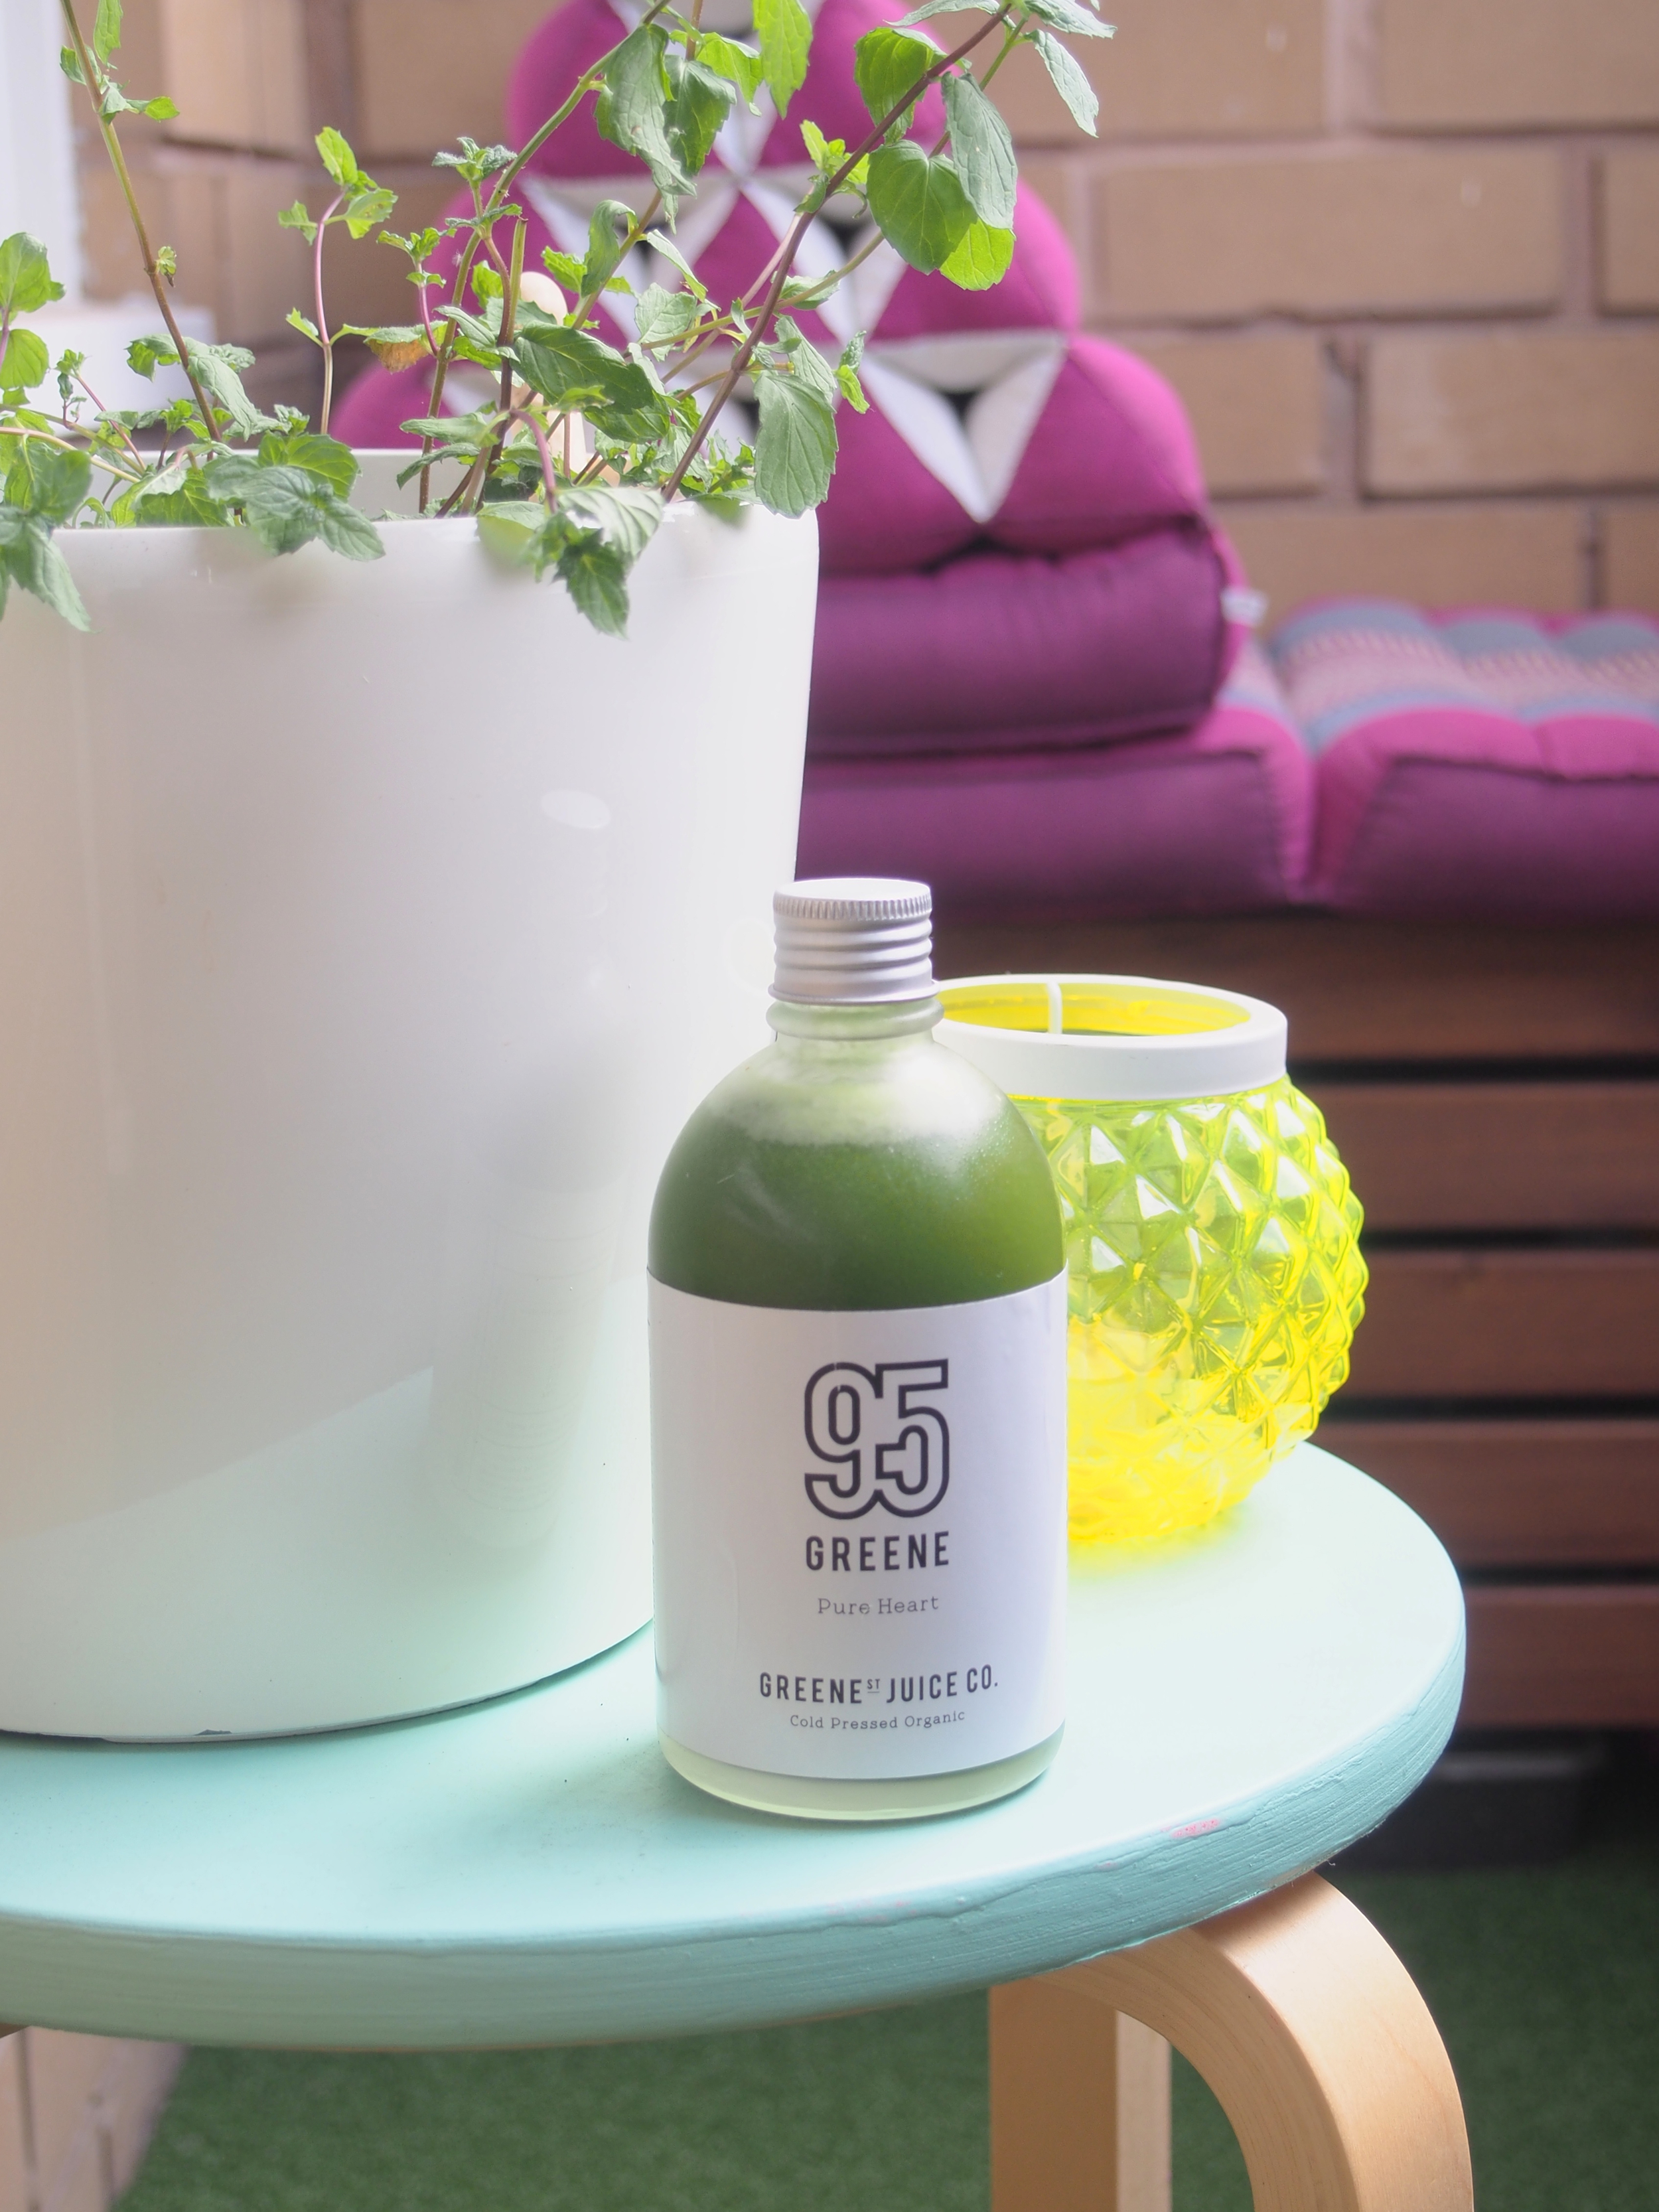 A green juice combining celery, cucumber, kale, green apple, ginger mint and parsley.